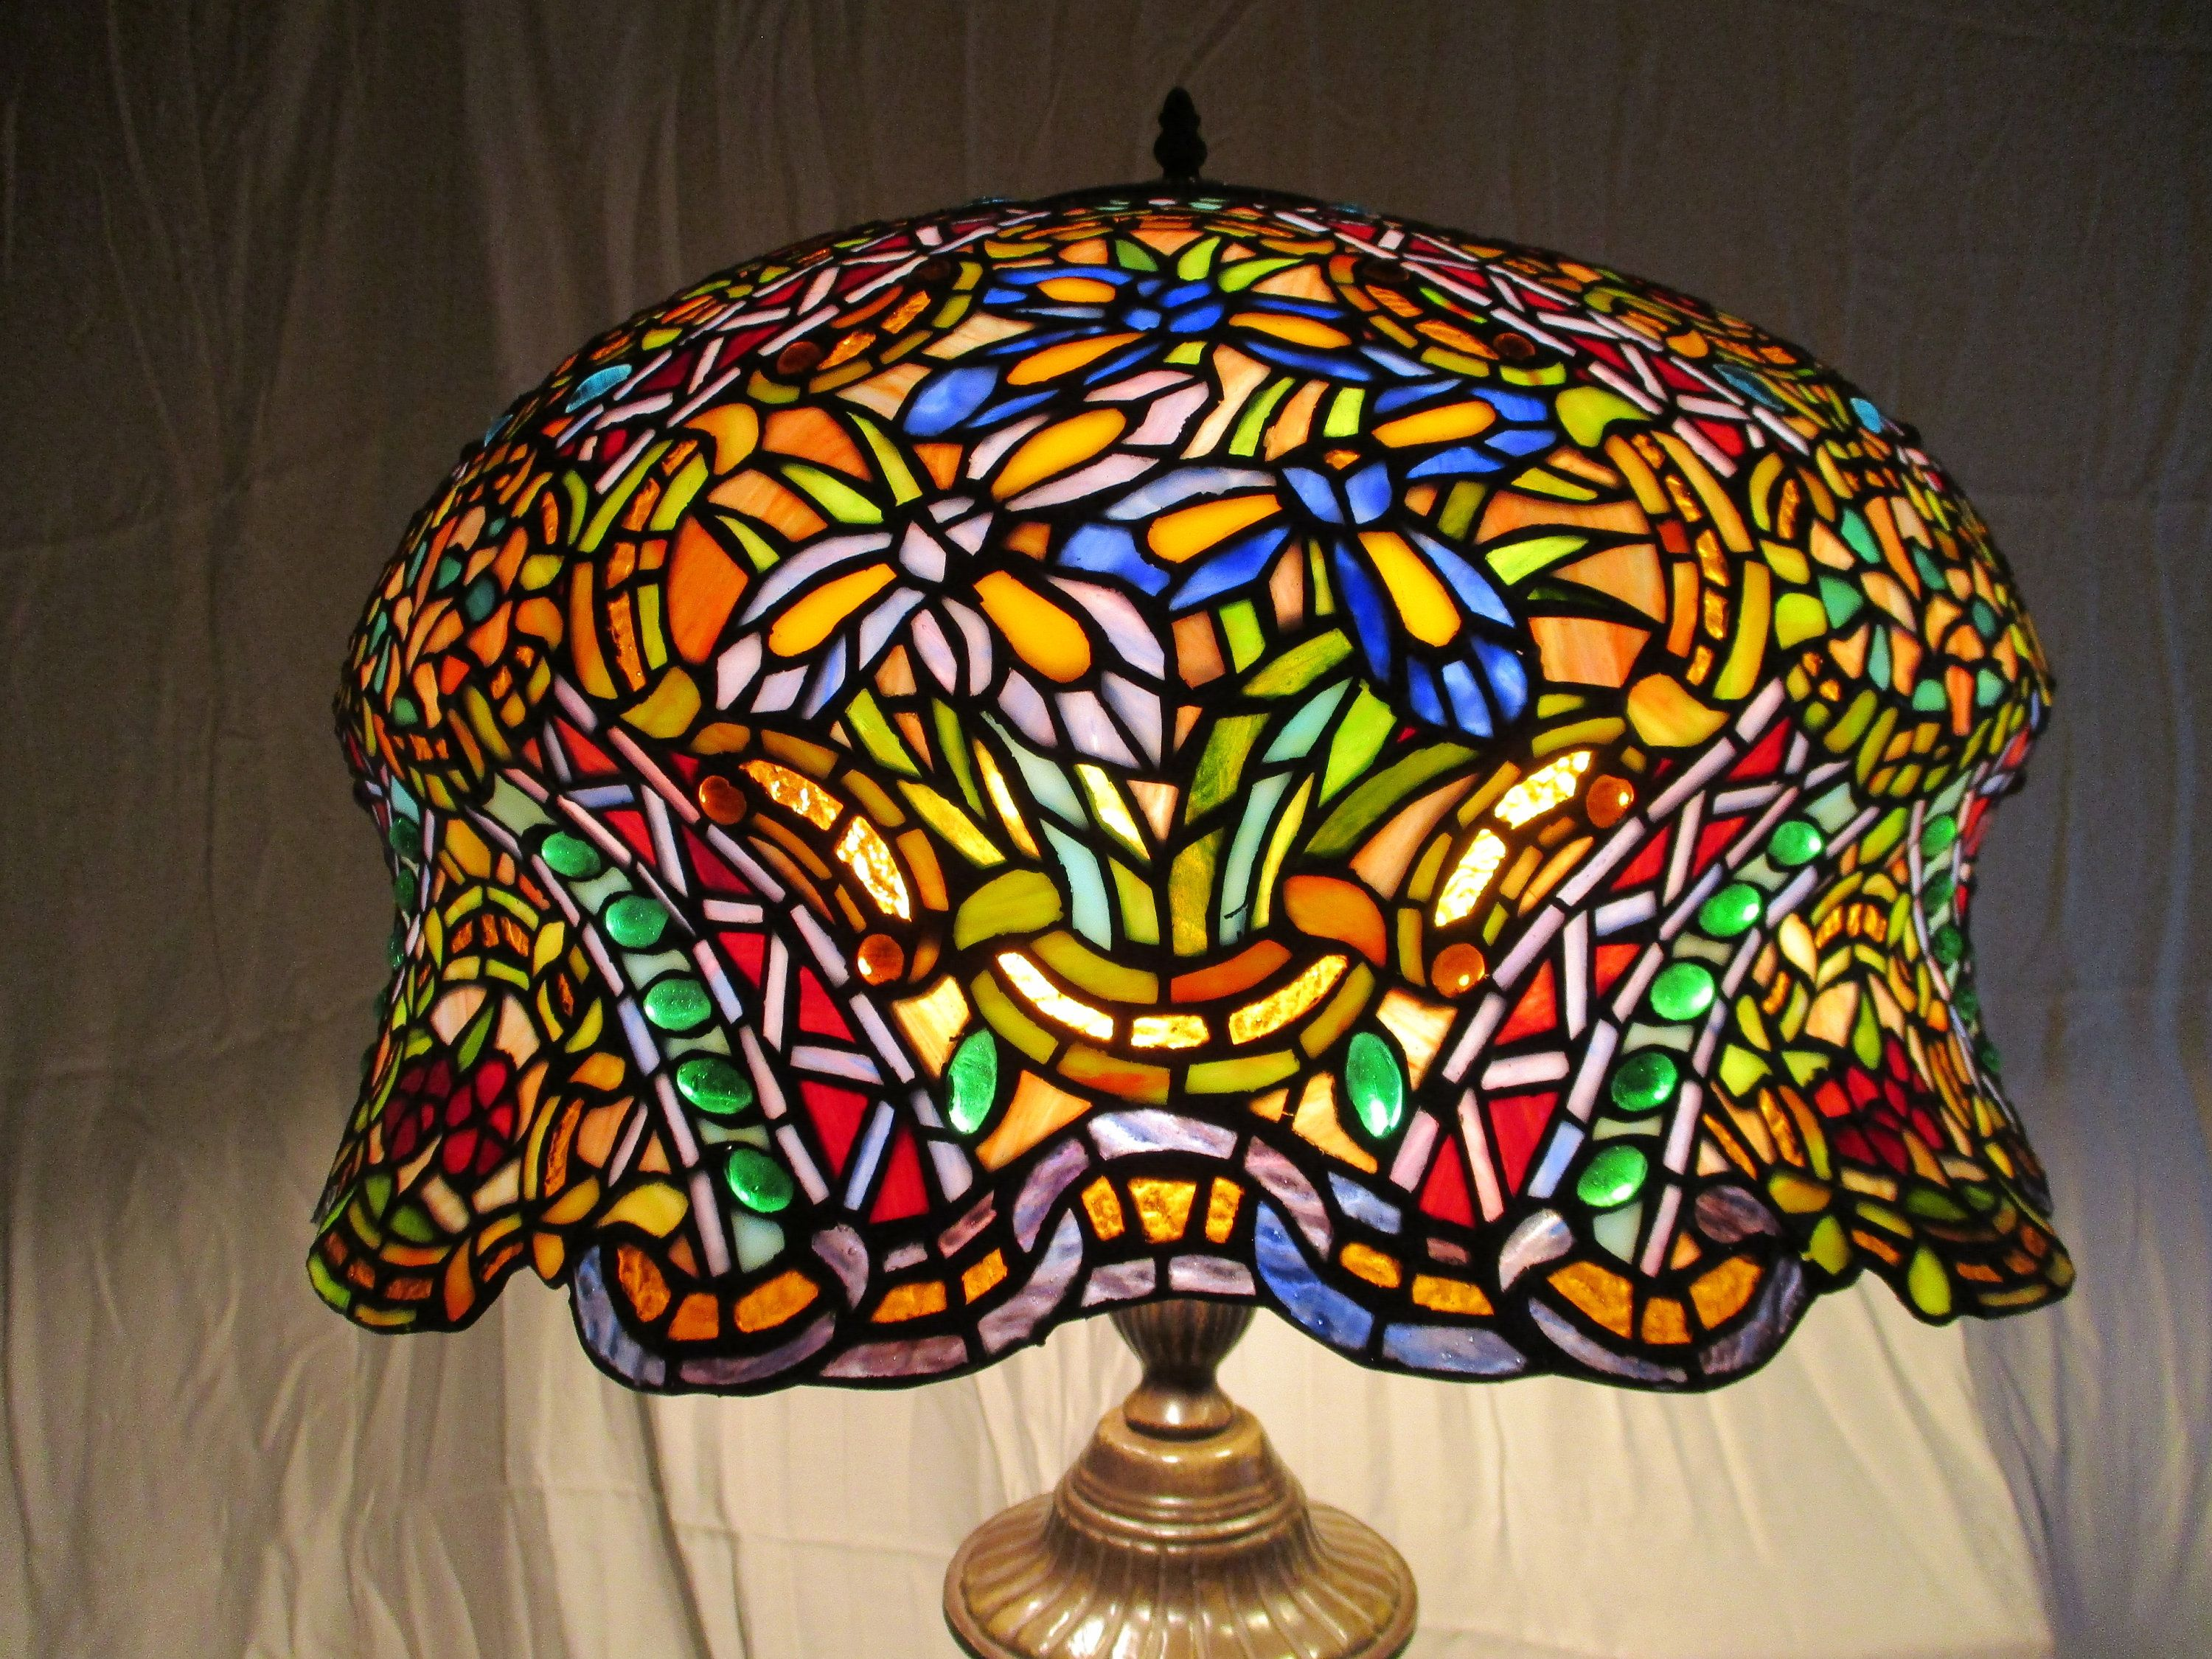 Antique Stunning Large Tiffany Style Stained Glass Table Lamp 3 Bulbs With Pull Strings Bronze Colored Stained Glass Table Lamps Tiffany Style Glass Table Lamp